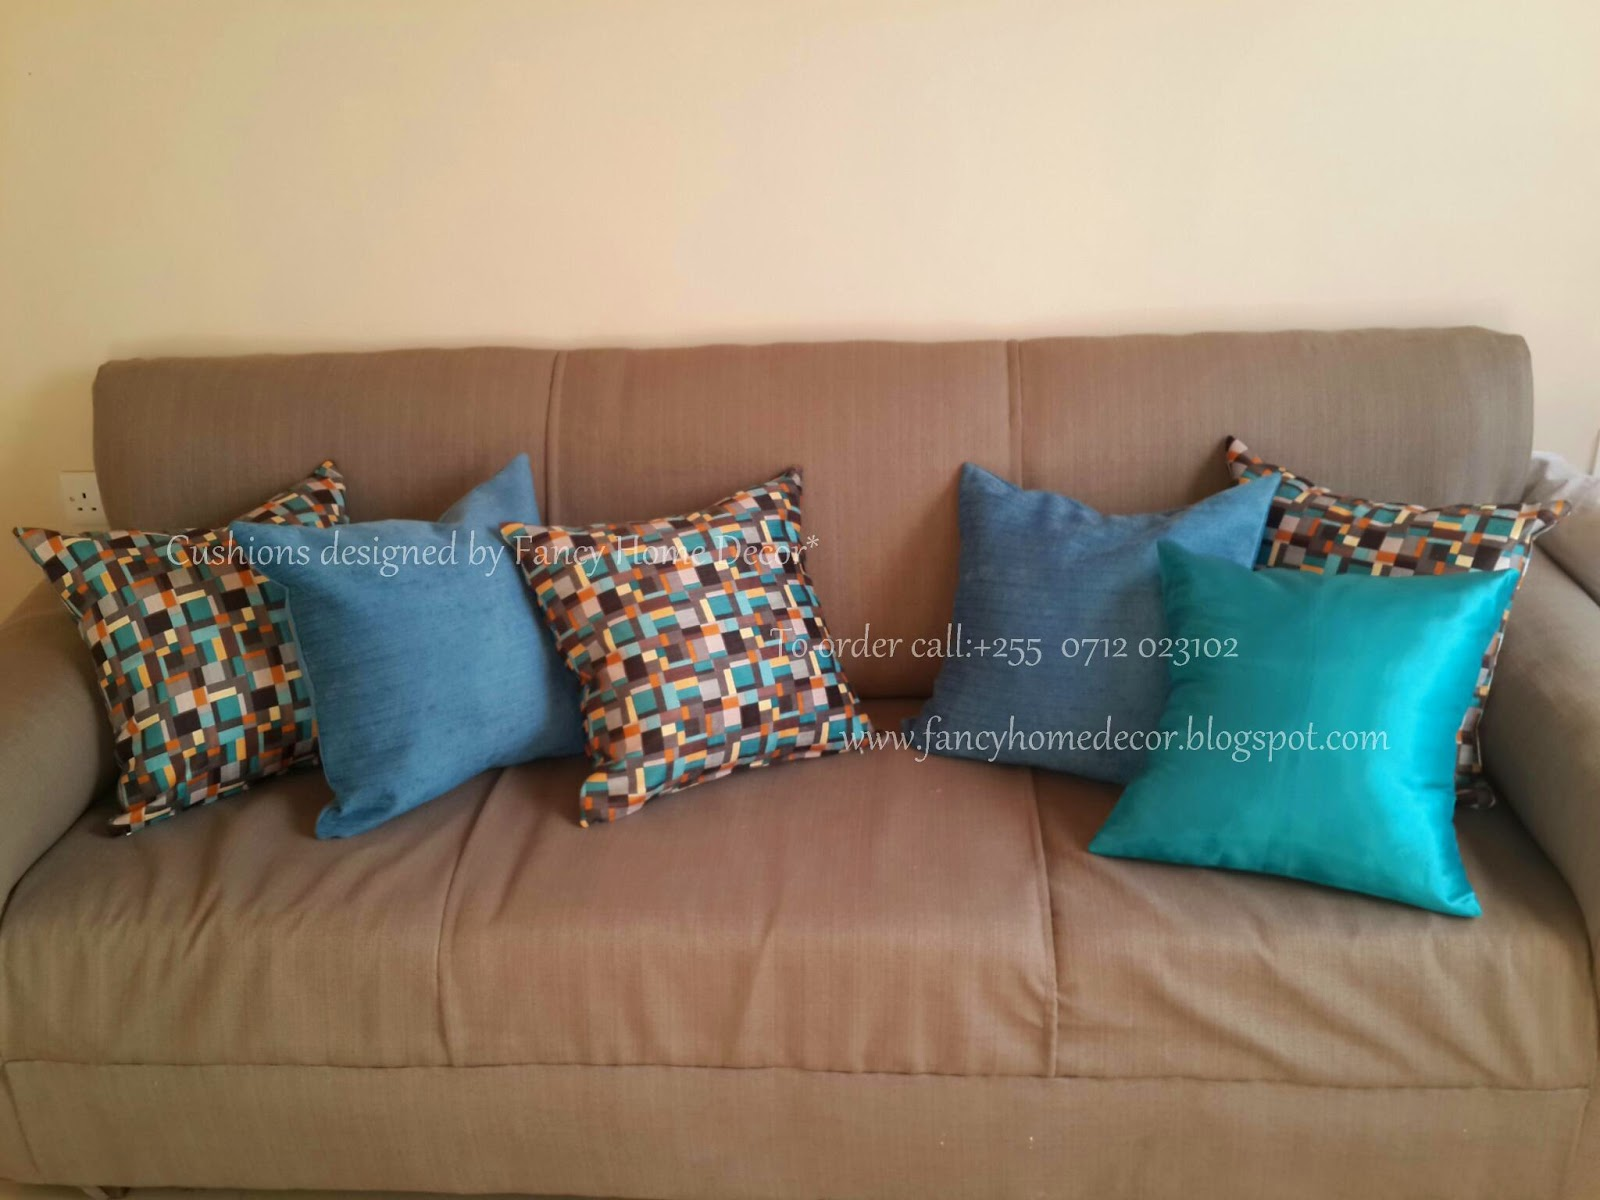 Fancy Home Decor Cushion Covers Available At Fancy Home